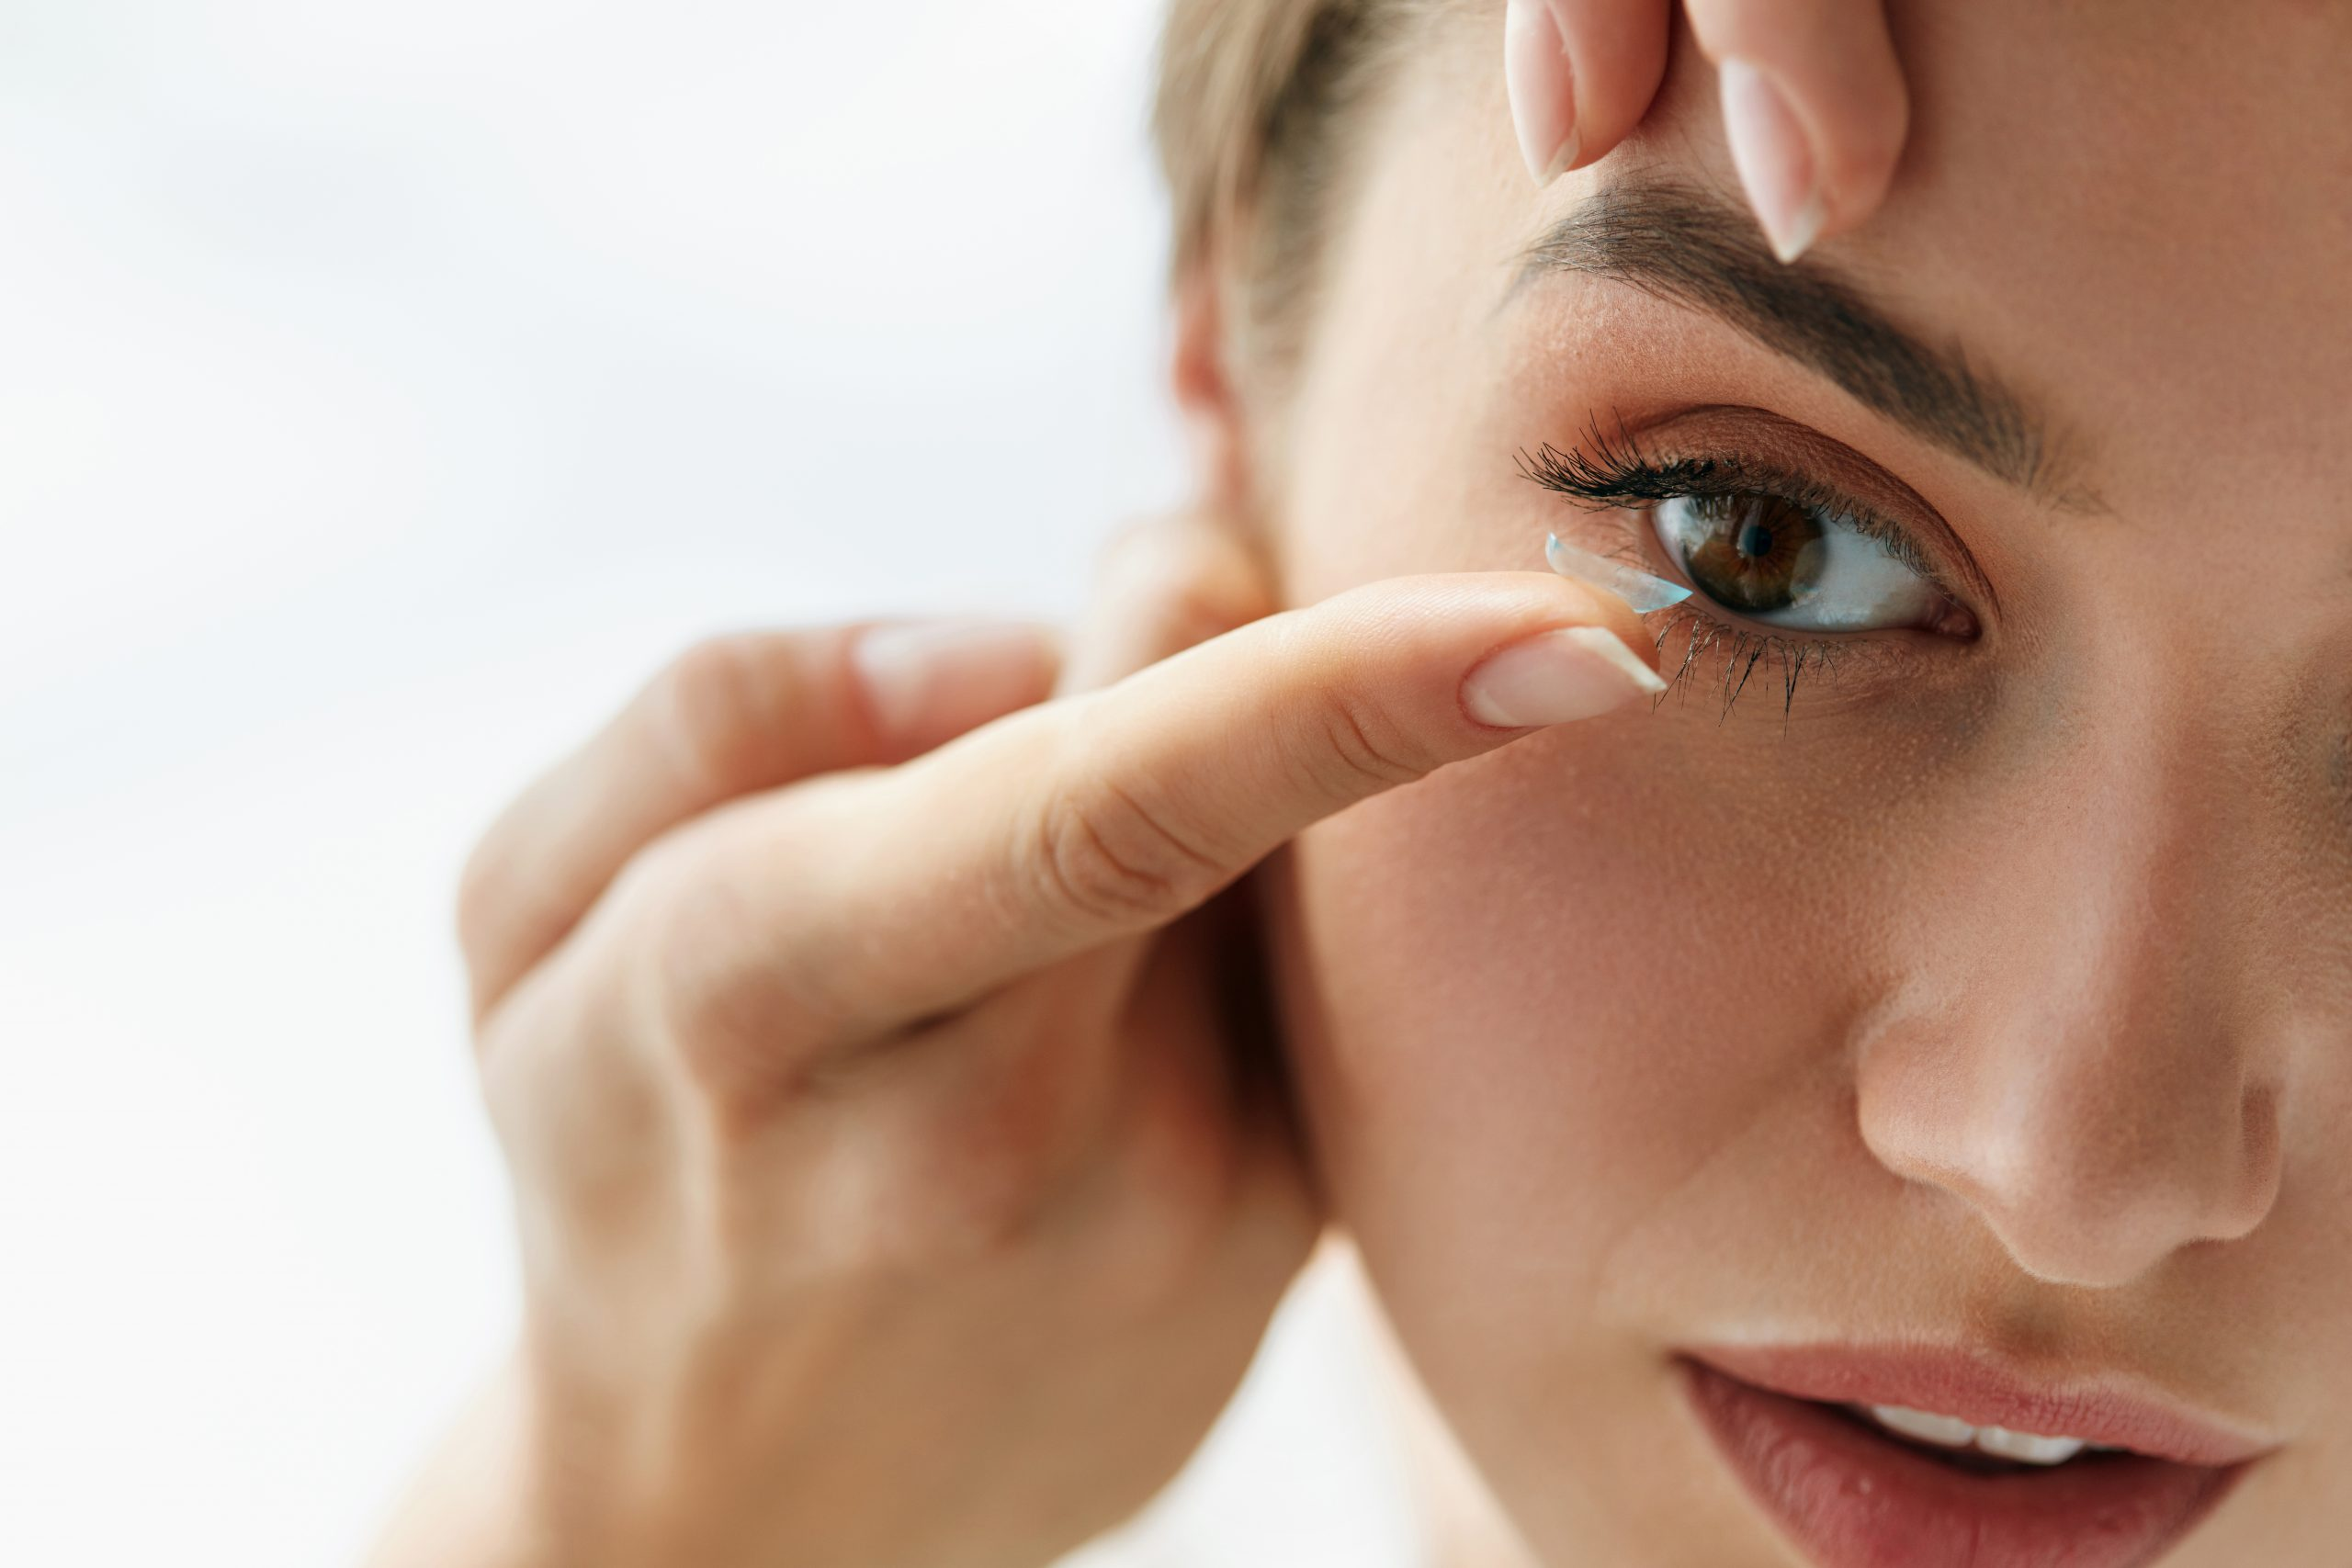 Planning to Get Contact Lenses? Here's Everything You Need to Know